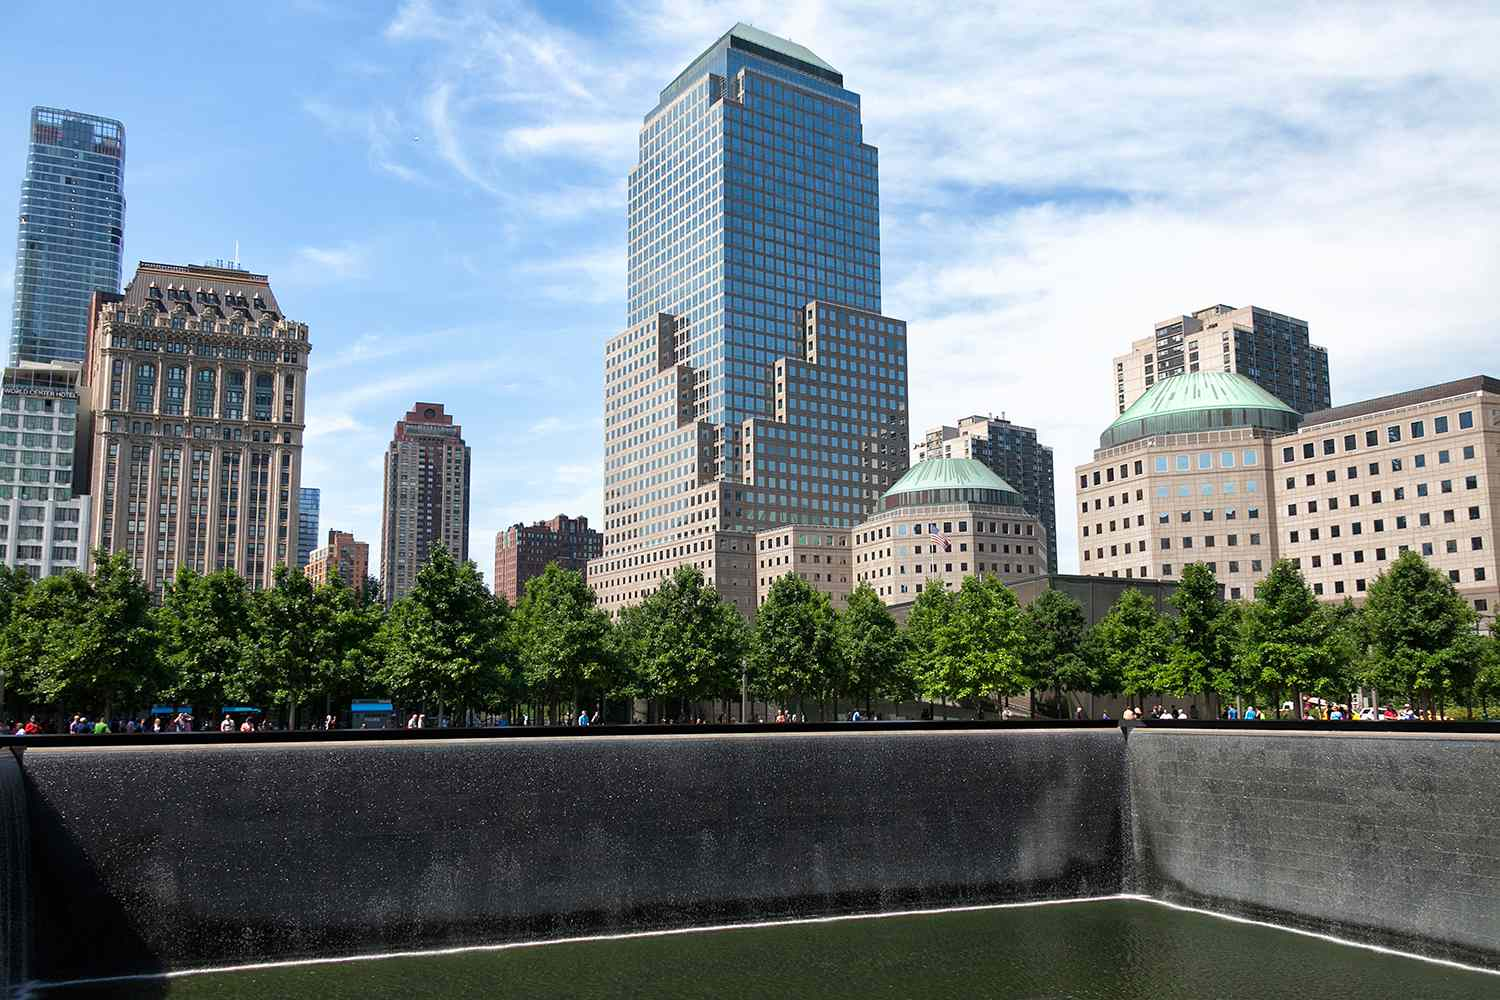 View of buildings and National September 11 Memorial in the island of Manhattan in New York, United States 2016.